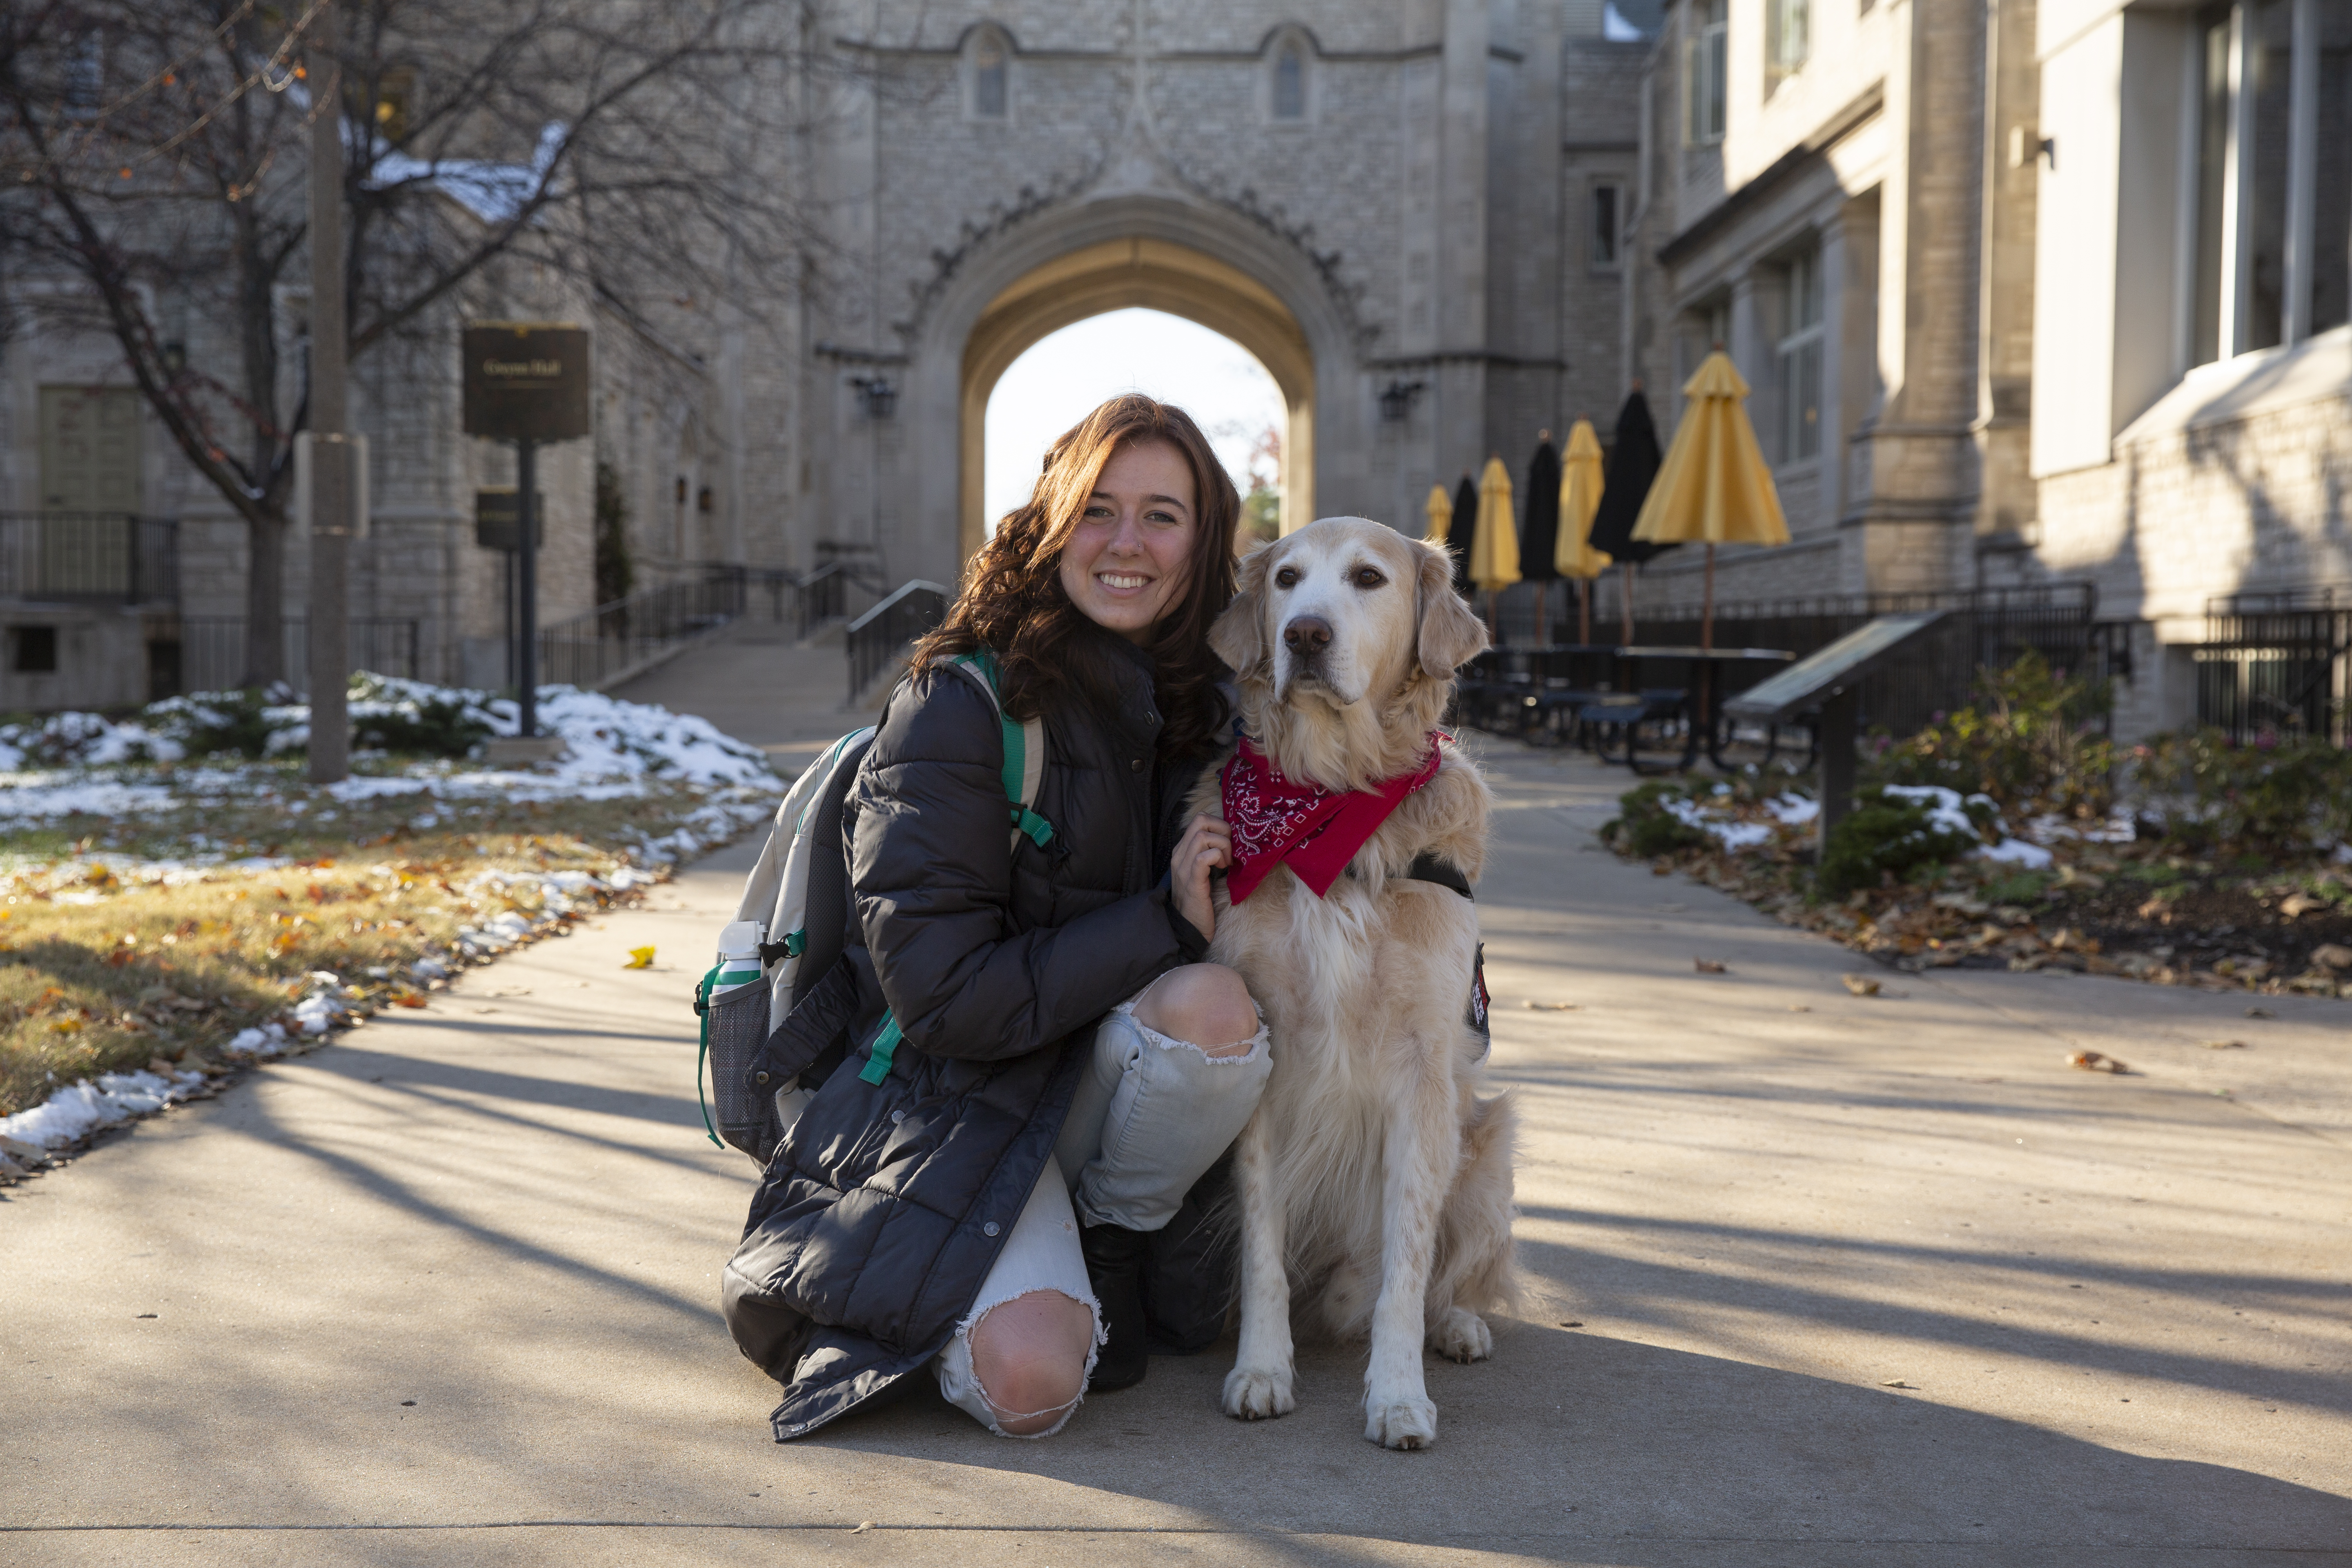 Sophie Endacott and her service dog Hudson on the University of Missouri campus. Photo by Sam O'Keefe/University of Missouri